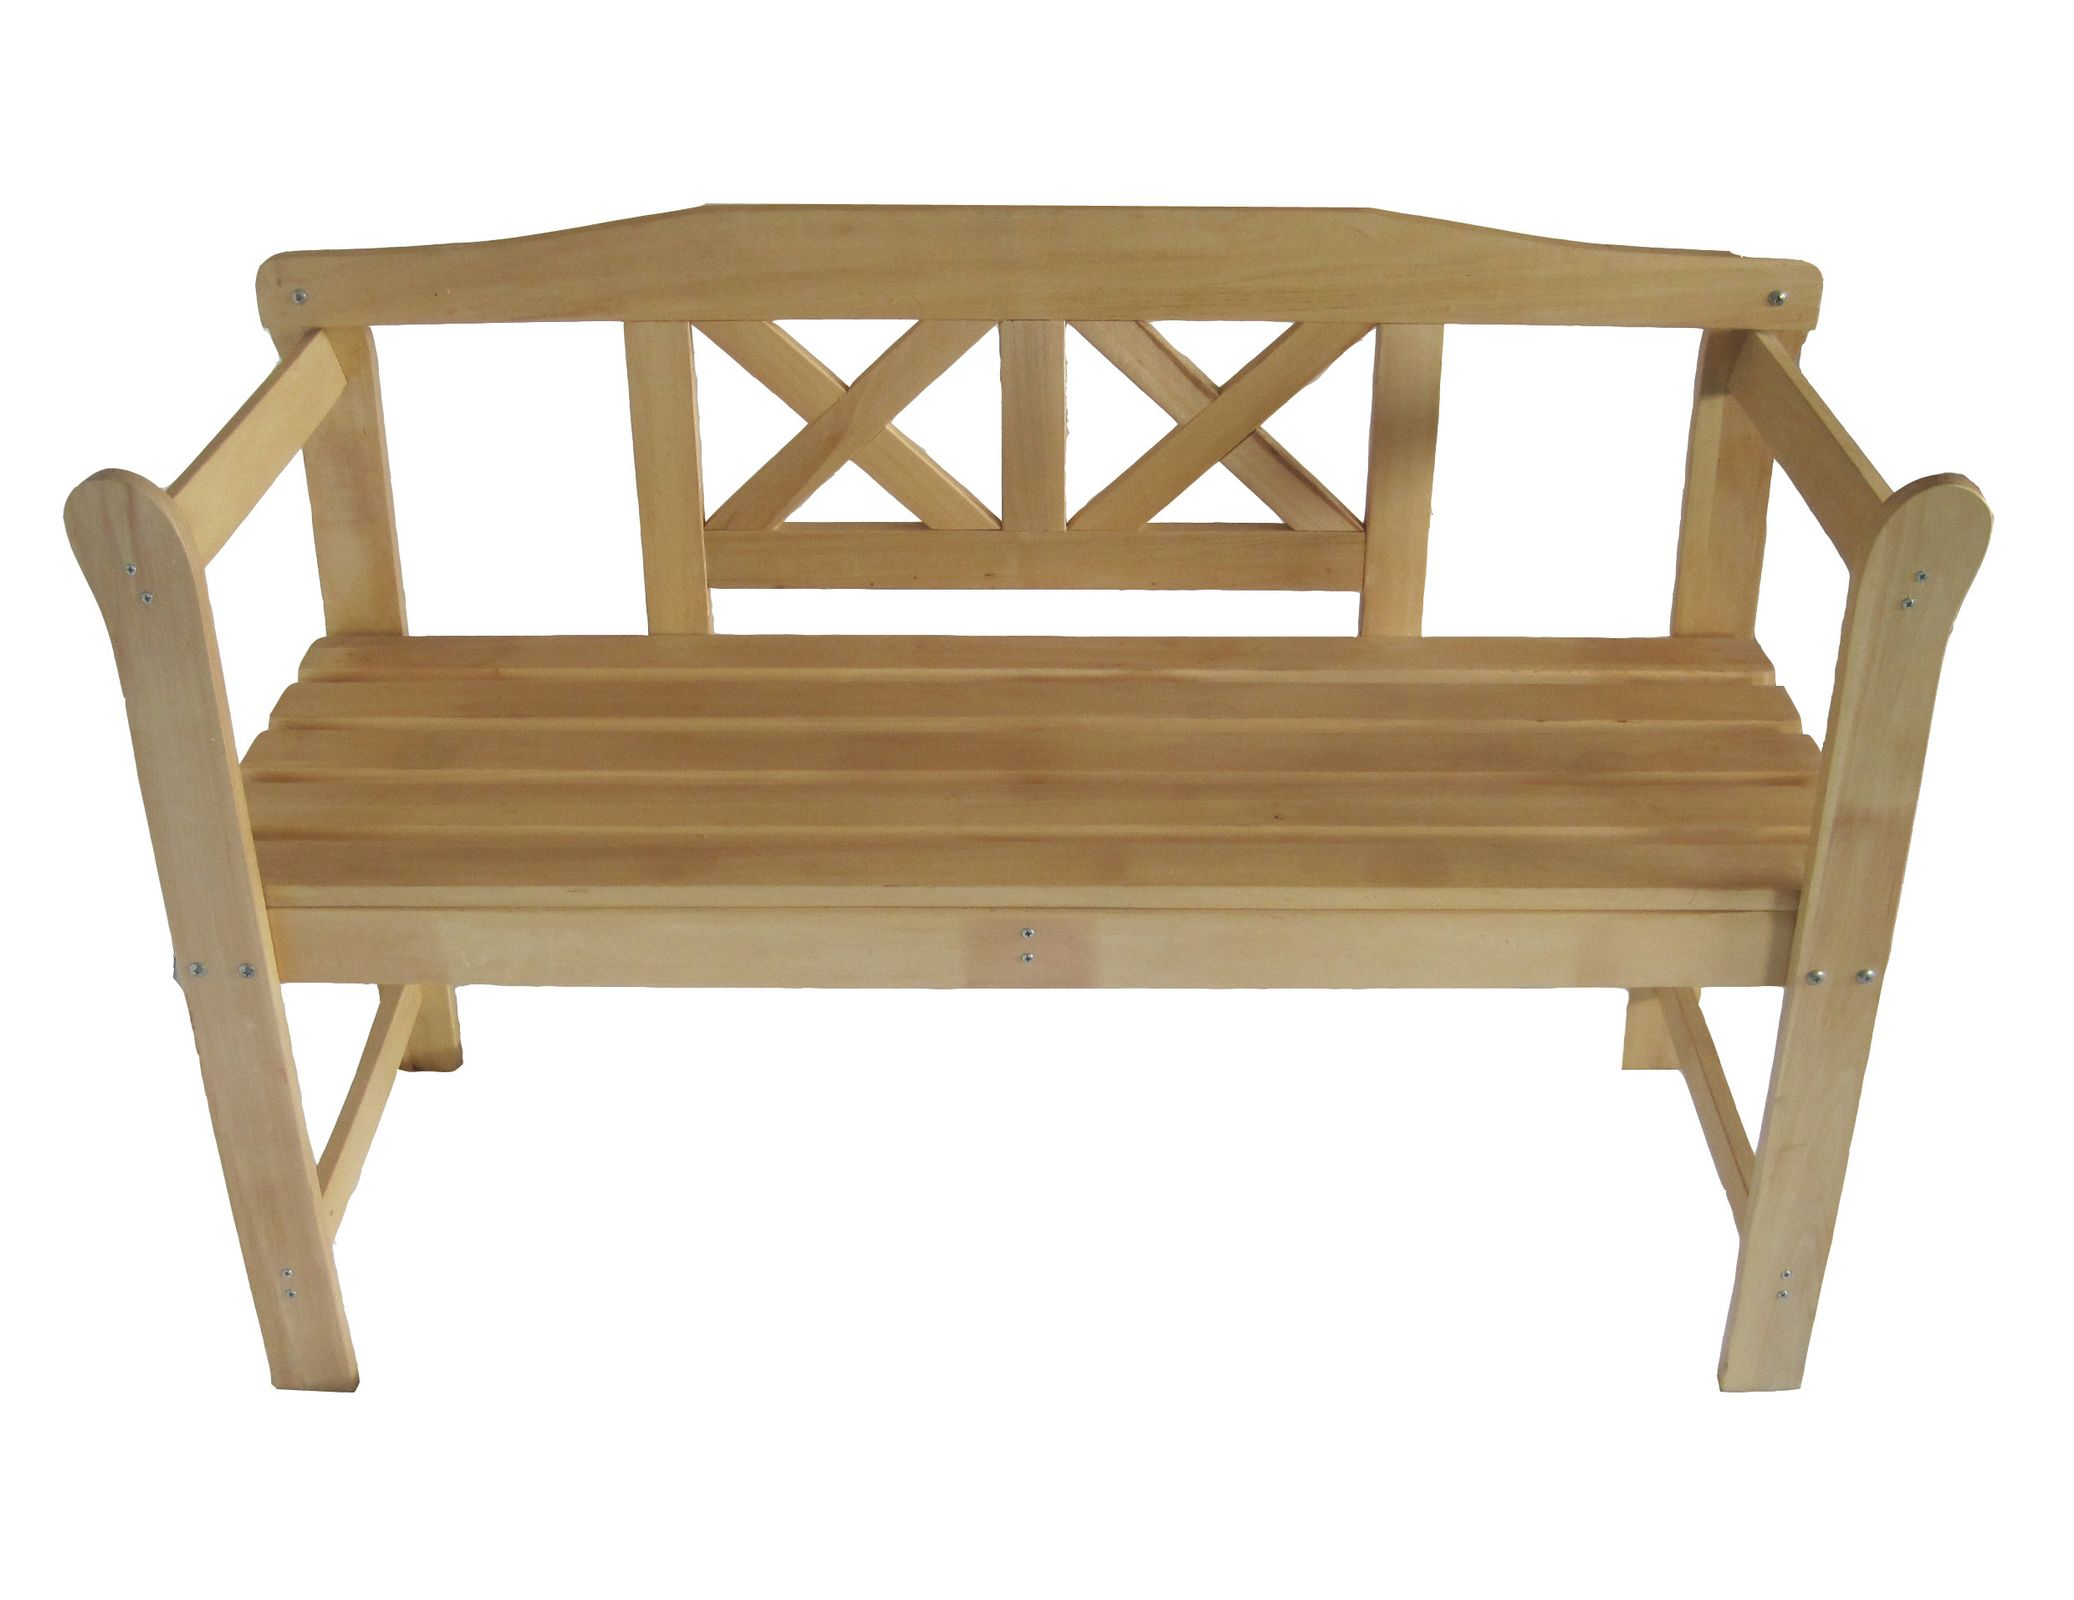 Outdoor home wooden 2 seat seater garden bench furniture for Wooden furniture